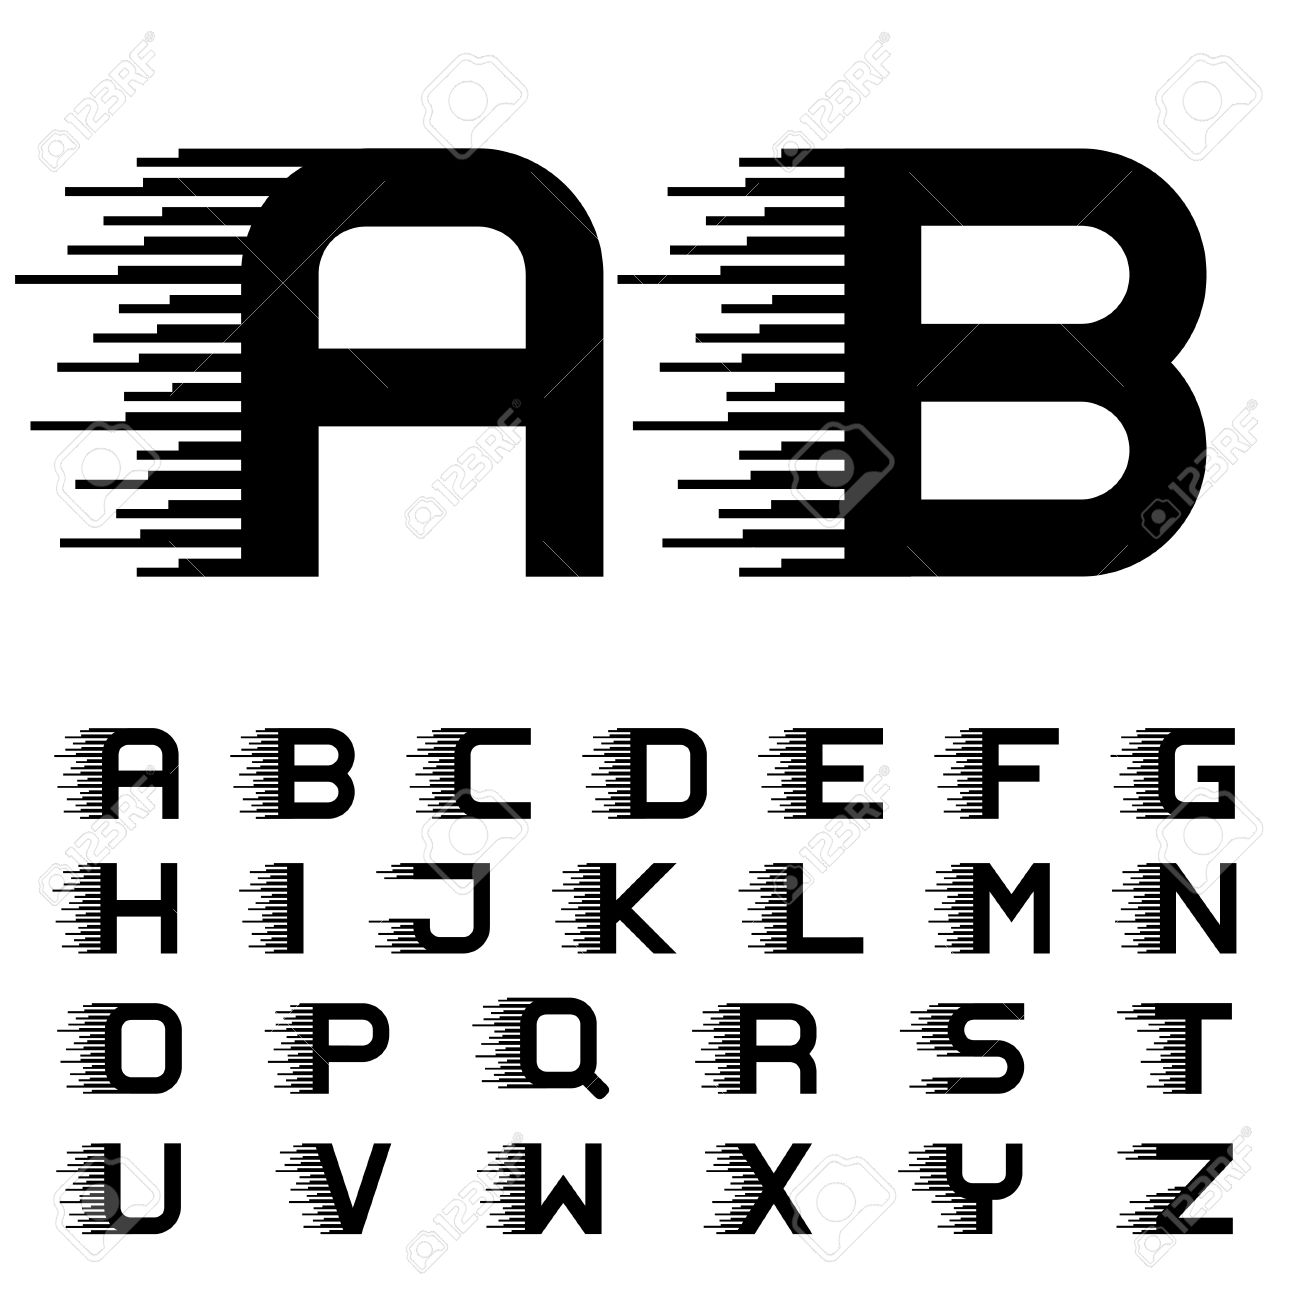 vector speed motion lines font alphabet letters royalty free rh 123rf com vector letters grunge vector letters for employment